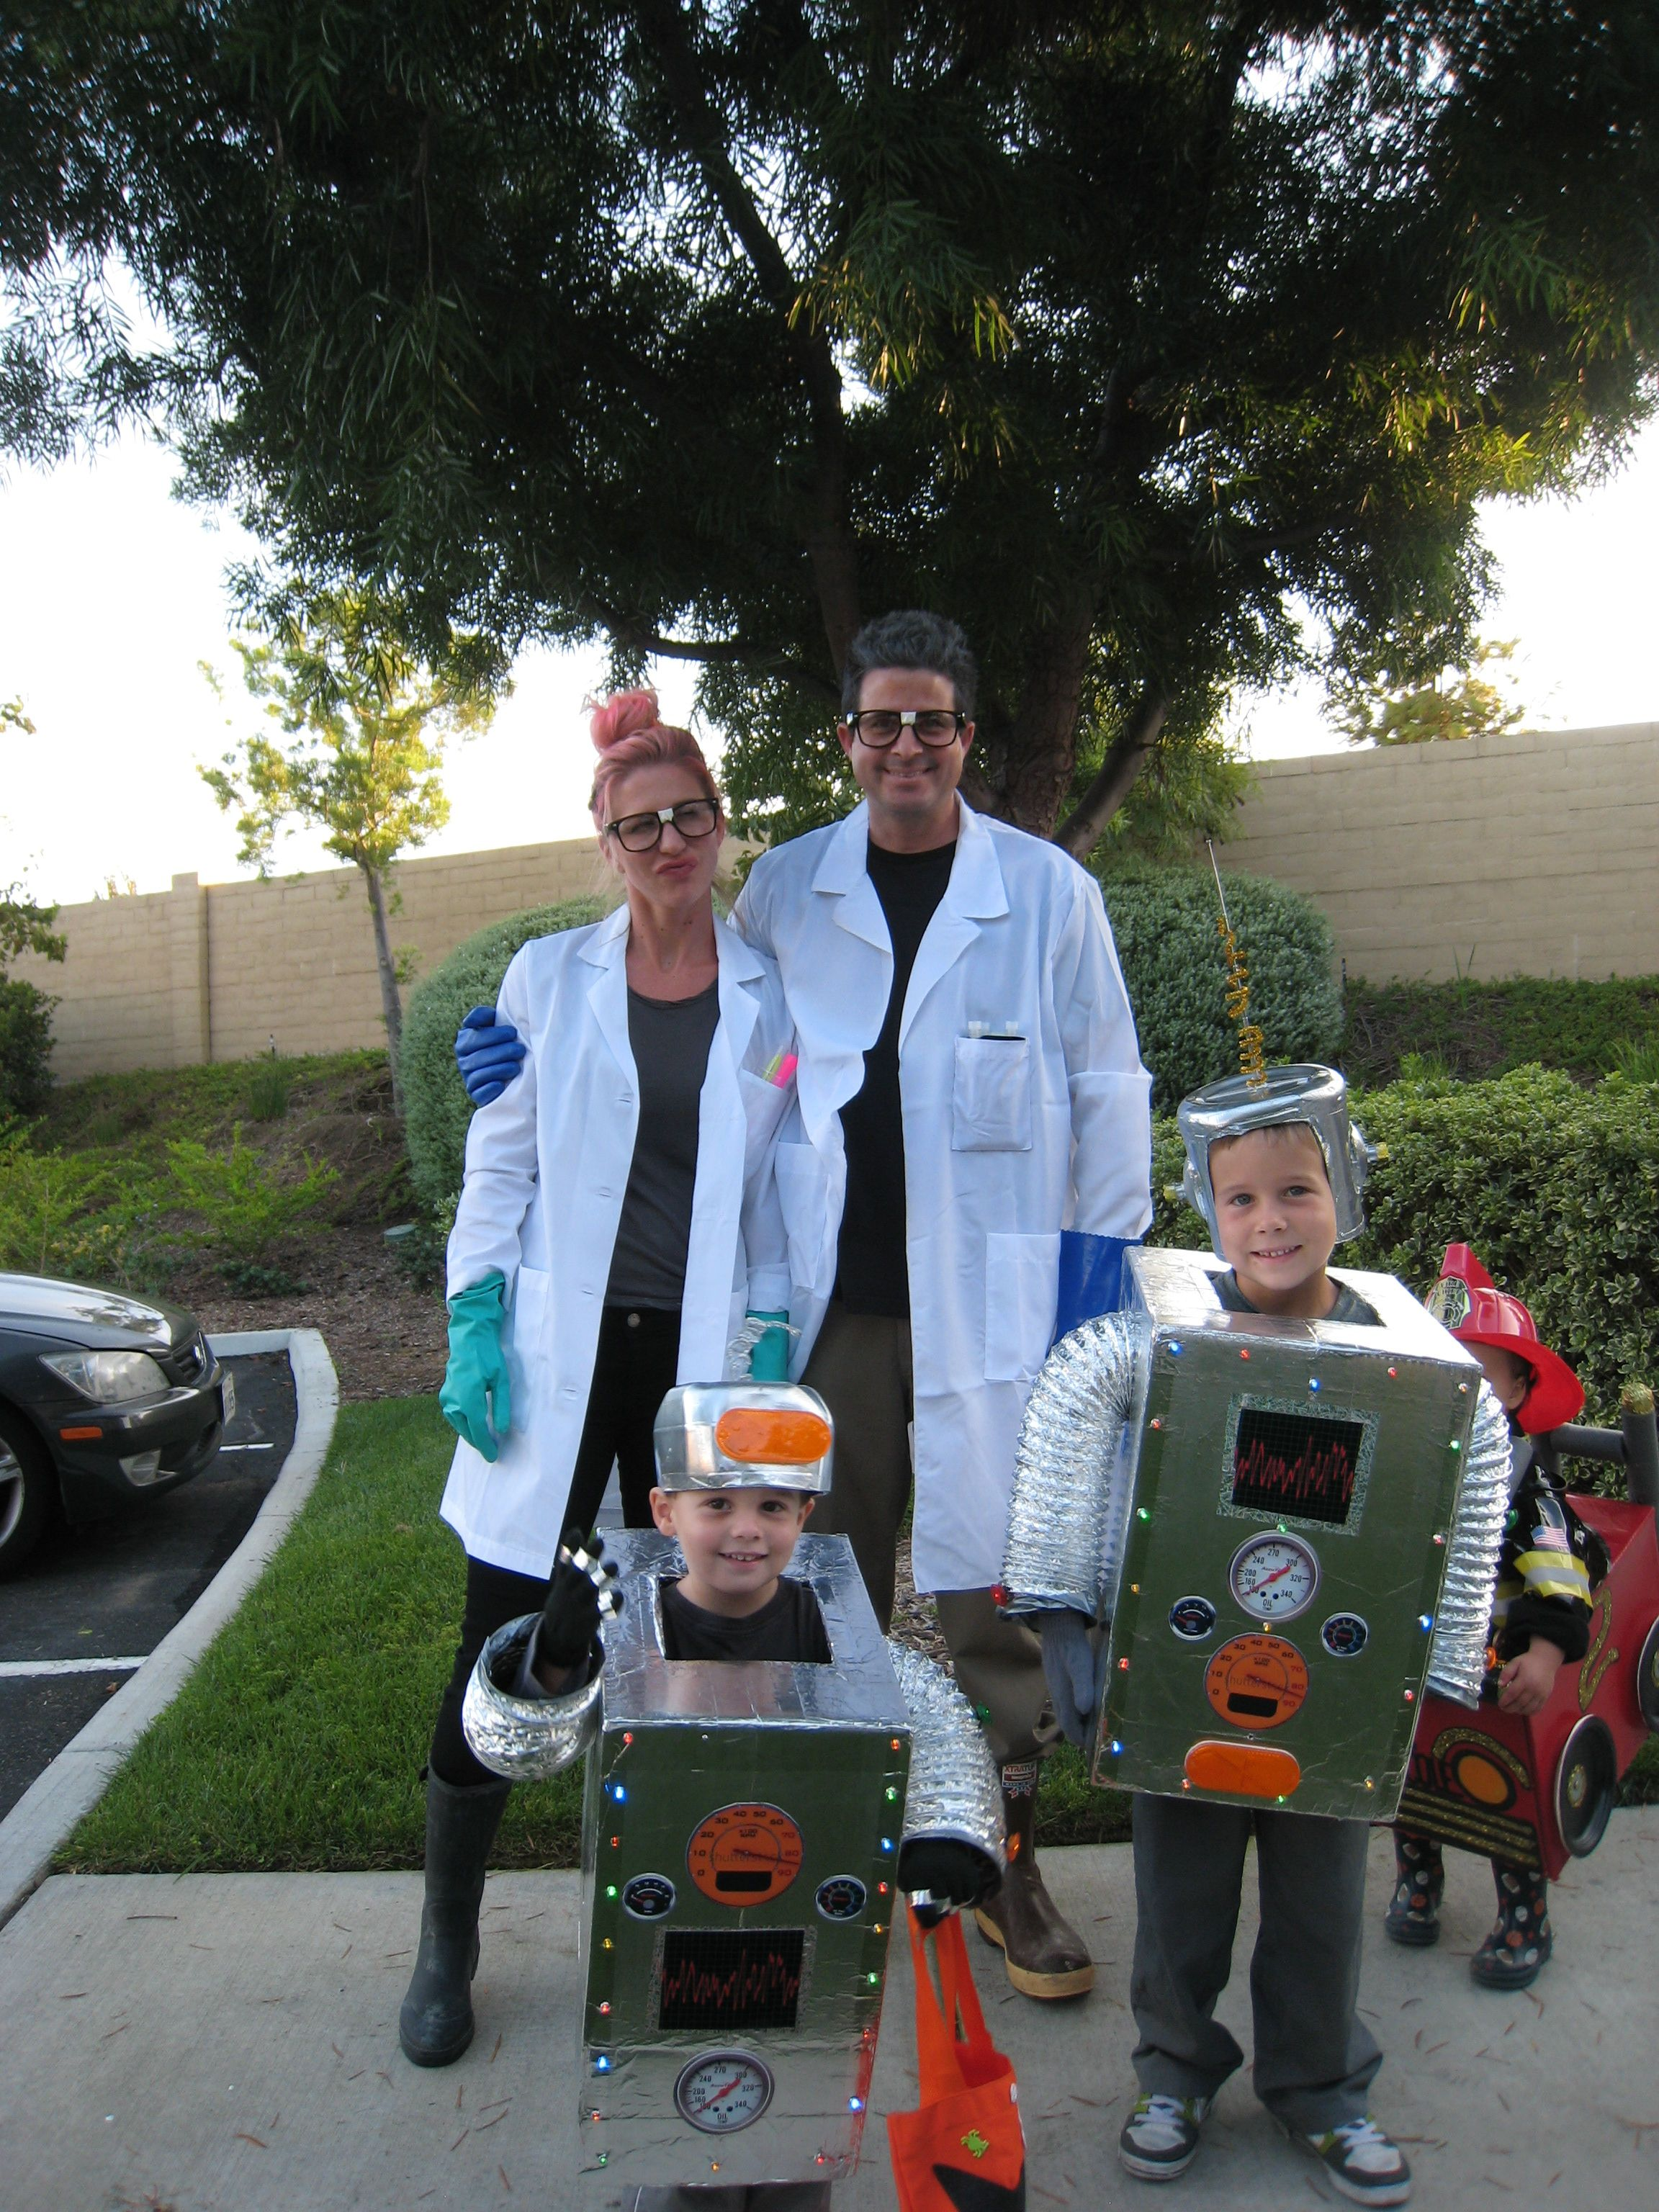 Halloween Costume 370.Mad Scientists And Robot Costume I Love Making Costumes Just